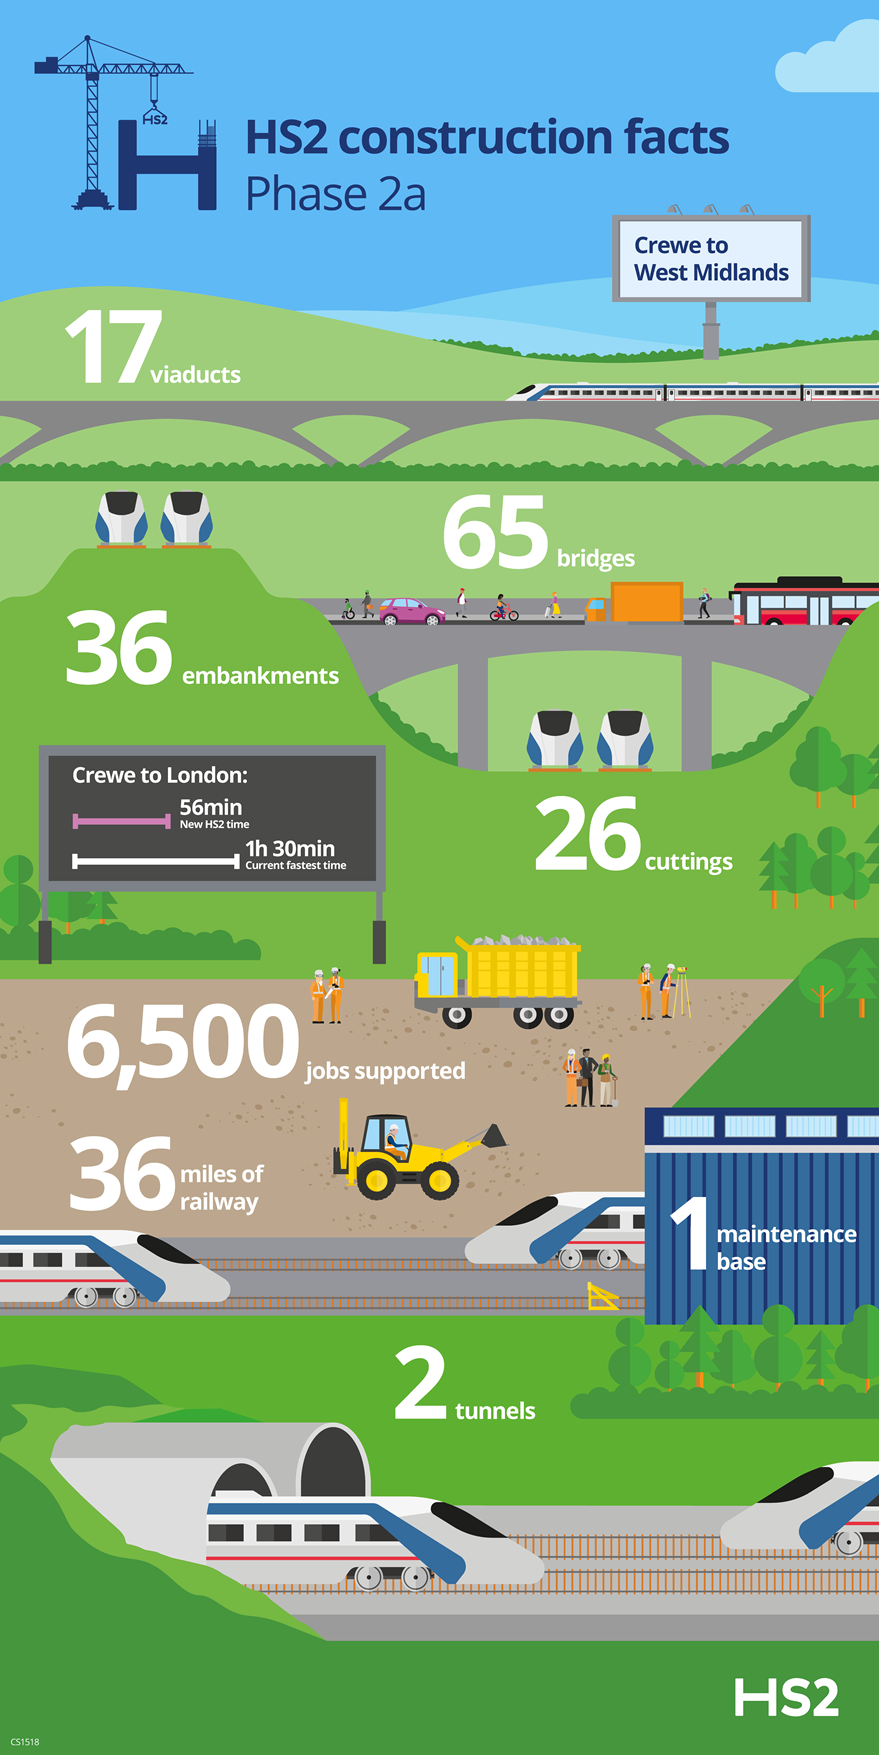 Next phase of HS2 to Crewe accelerates with latest contract tender: Phase 2a Infographic-3